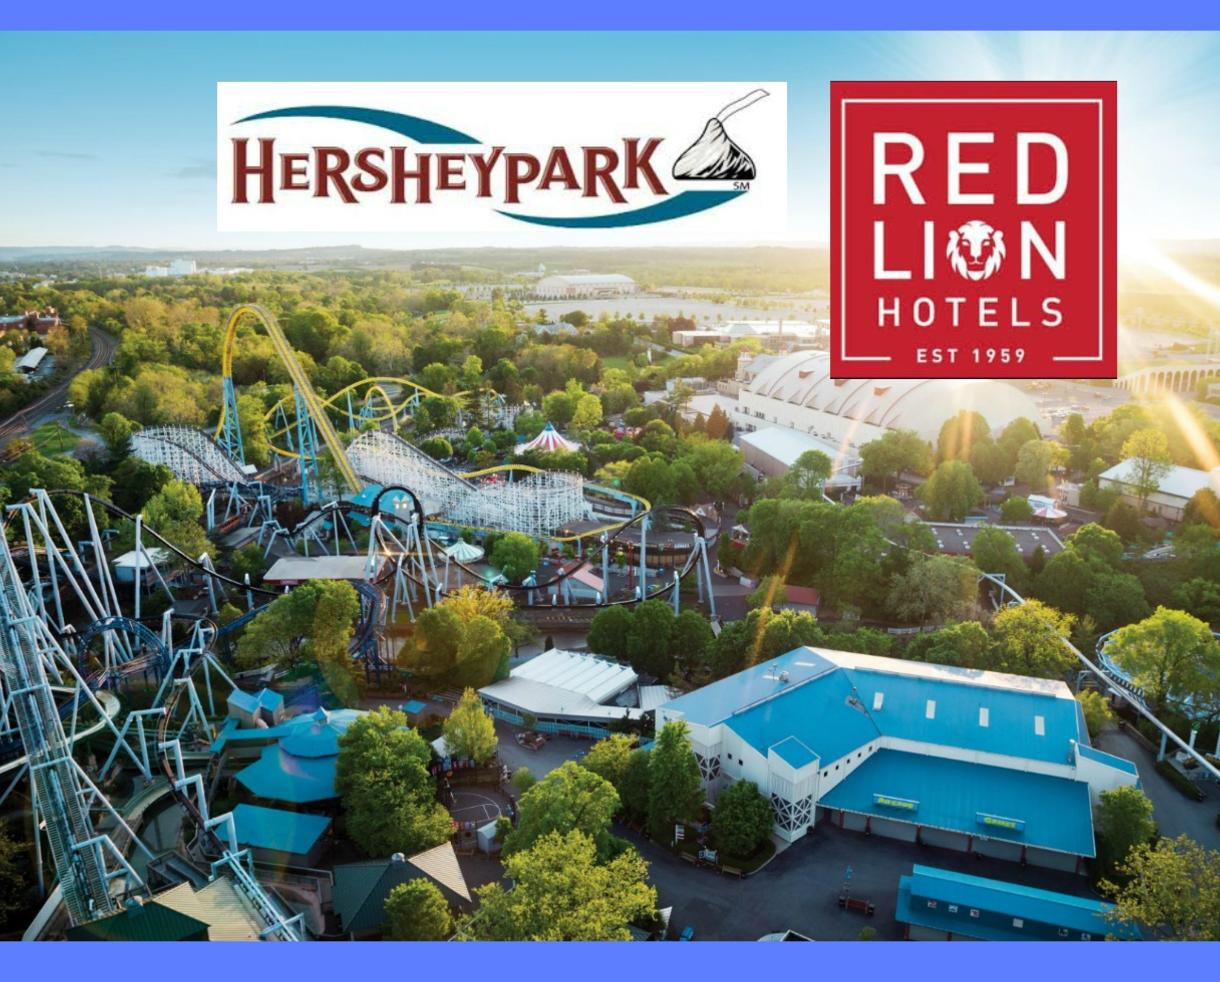 $229+ for One Night Hersheypark Getaway Package - Includes Hot Breakfast and HERSHEYPARK Tickets! (Up to 36% Off)